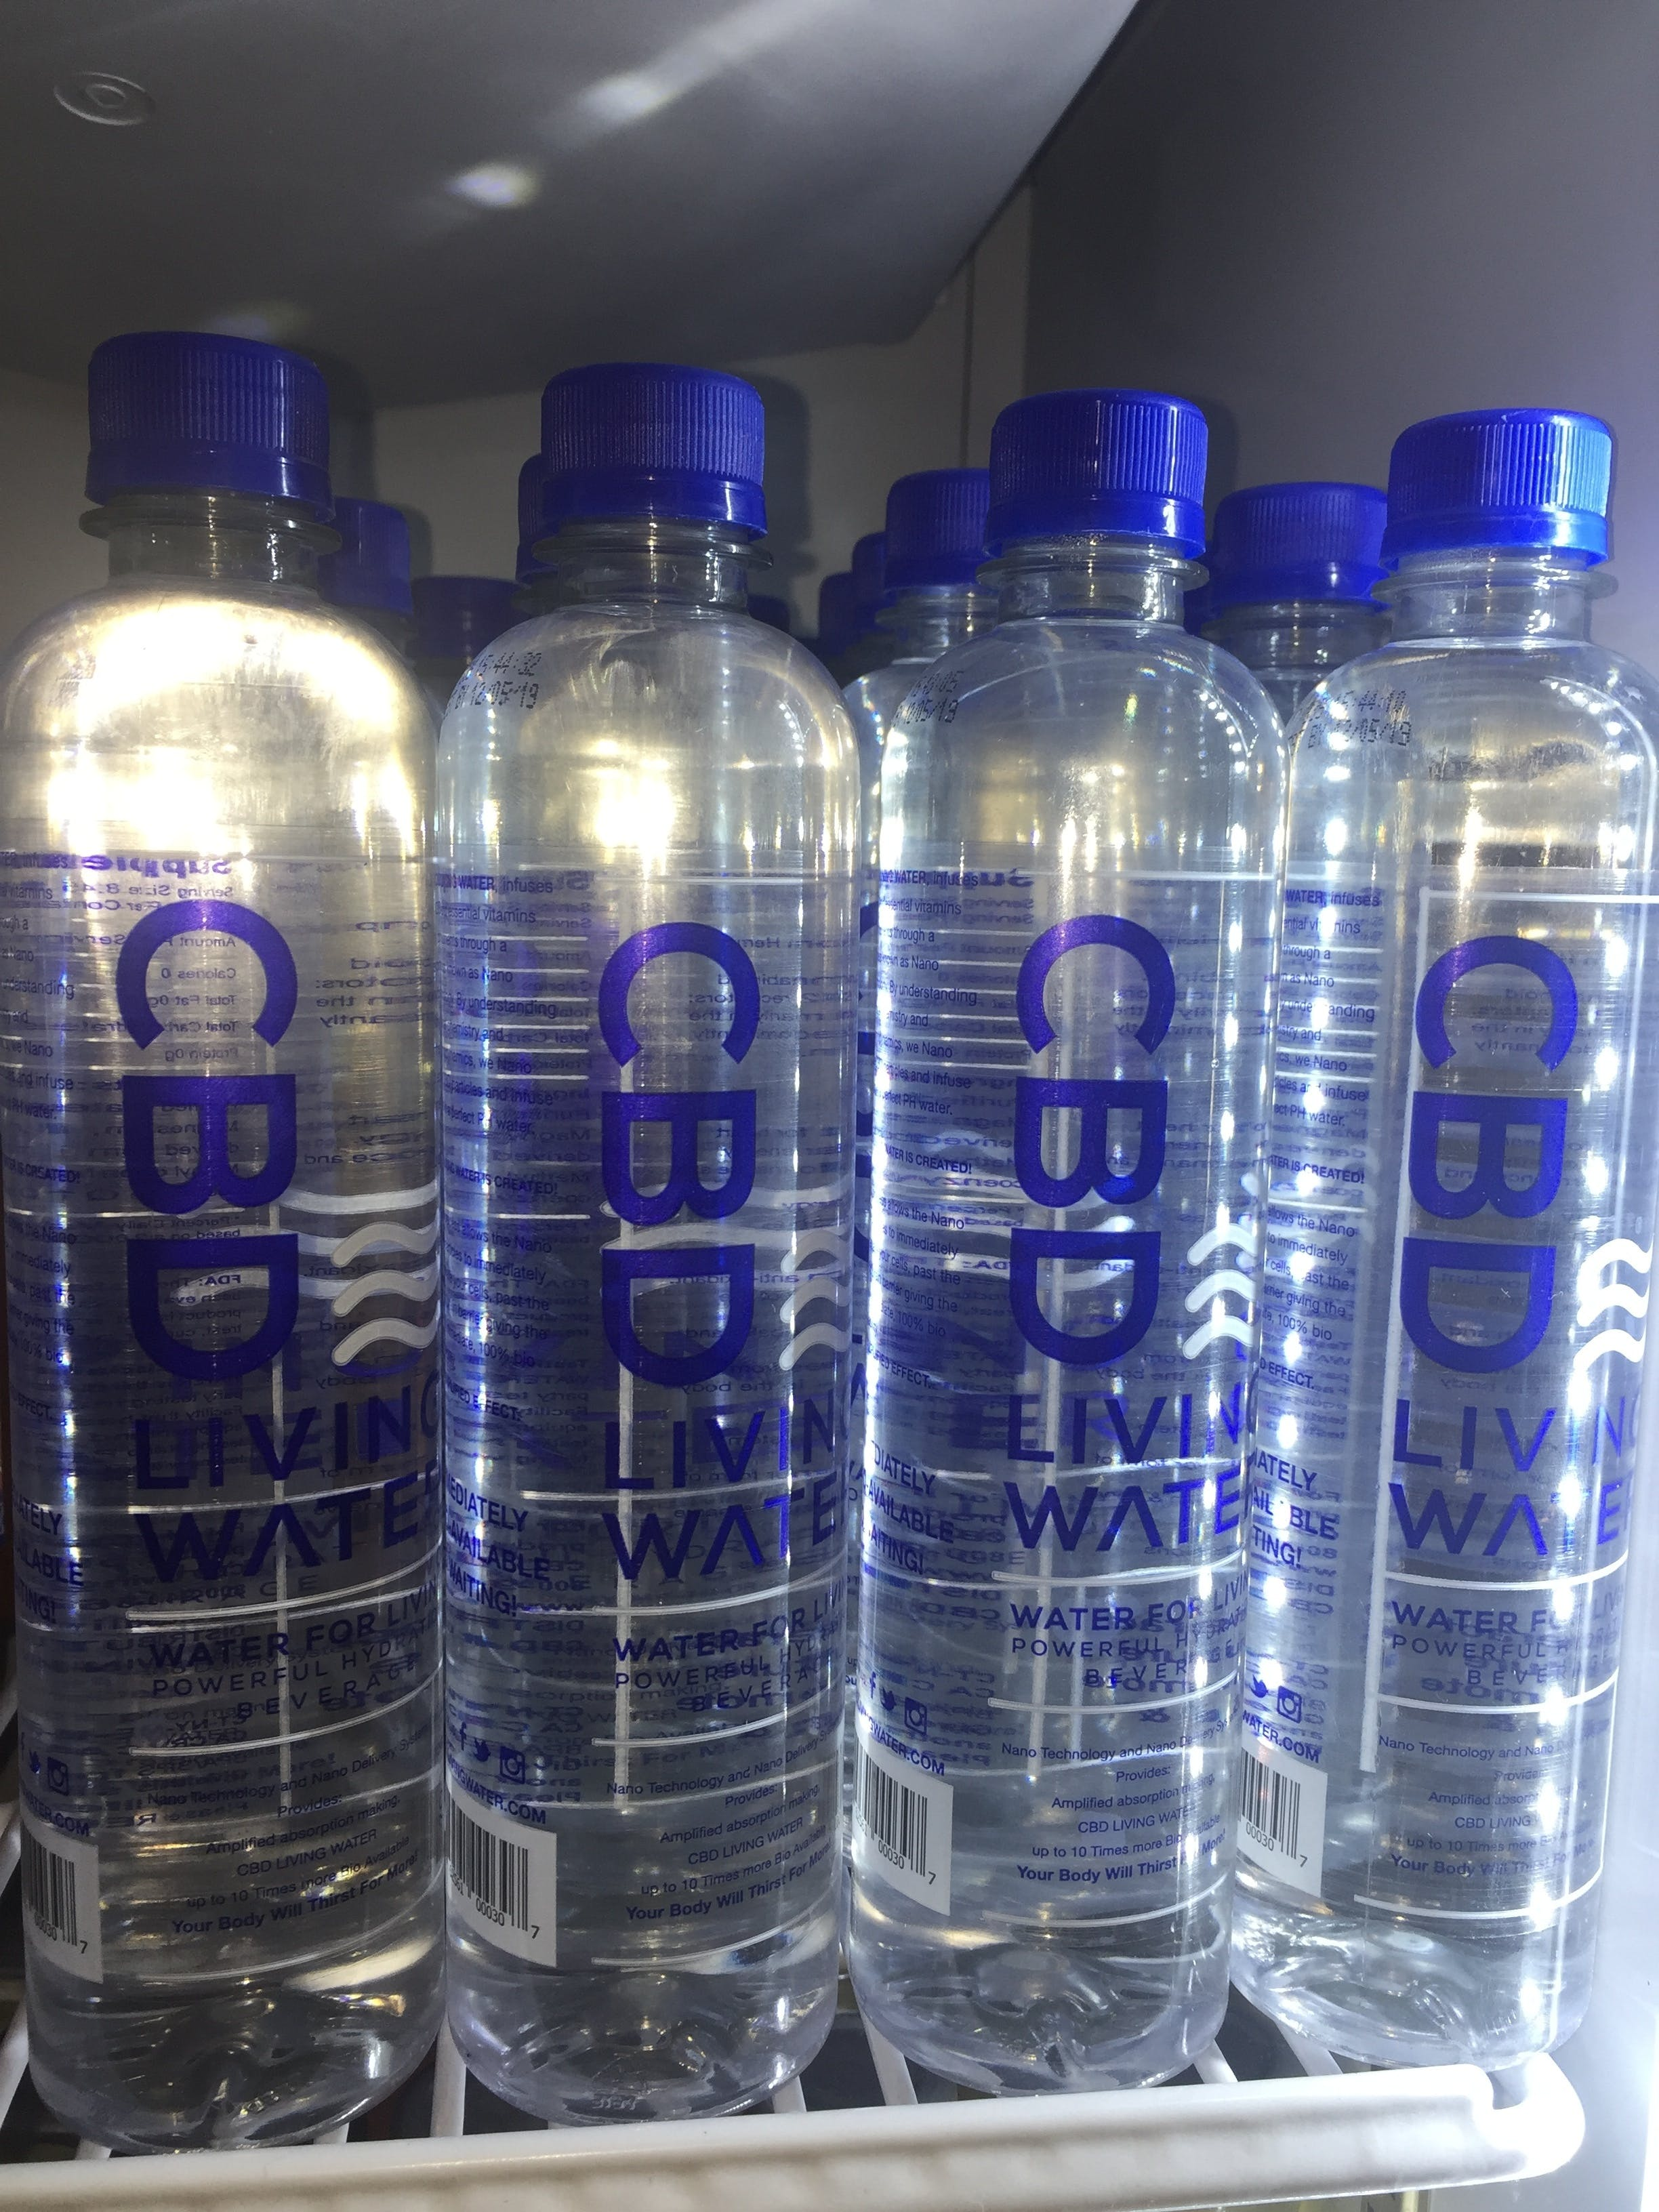 drink-cbd-water-7b3-4025-7d